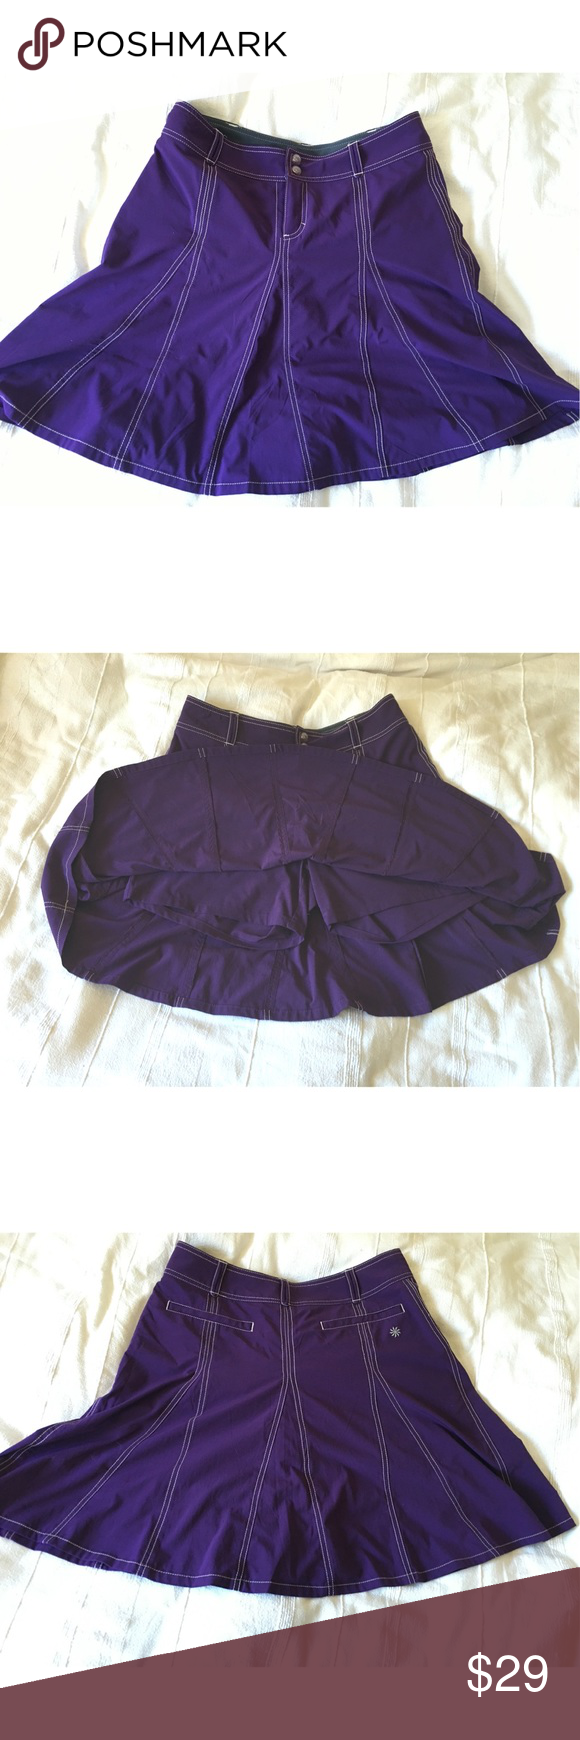 Athleta Whatever Skort, purple, size 6 EUC Athleta now discontinued Whatever skort in purple, size 6. Cute lightweight skirt with shorts underneath, perfect for travel, play, or just hanging around. Athleta Skirts A-Line or Full